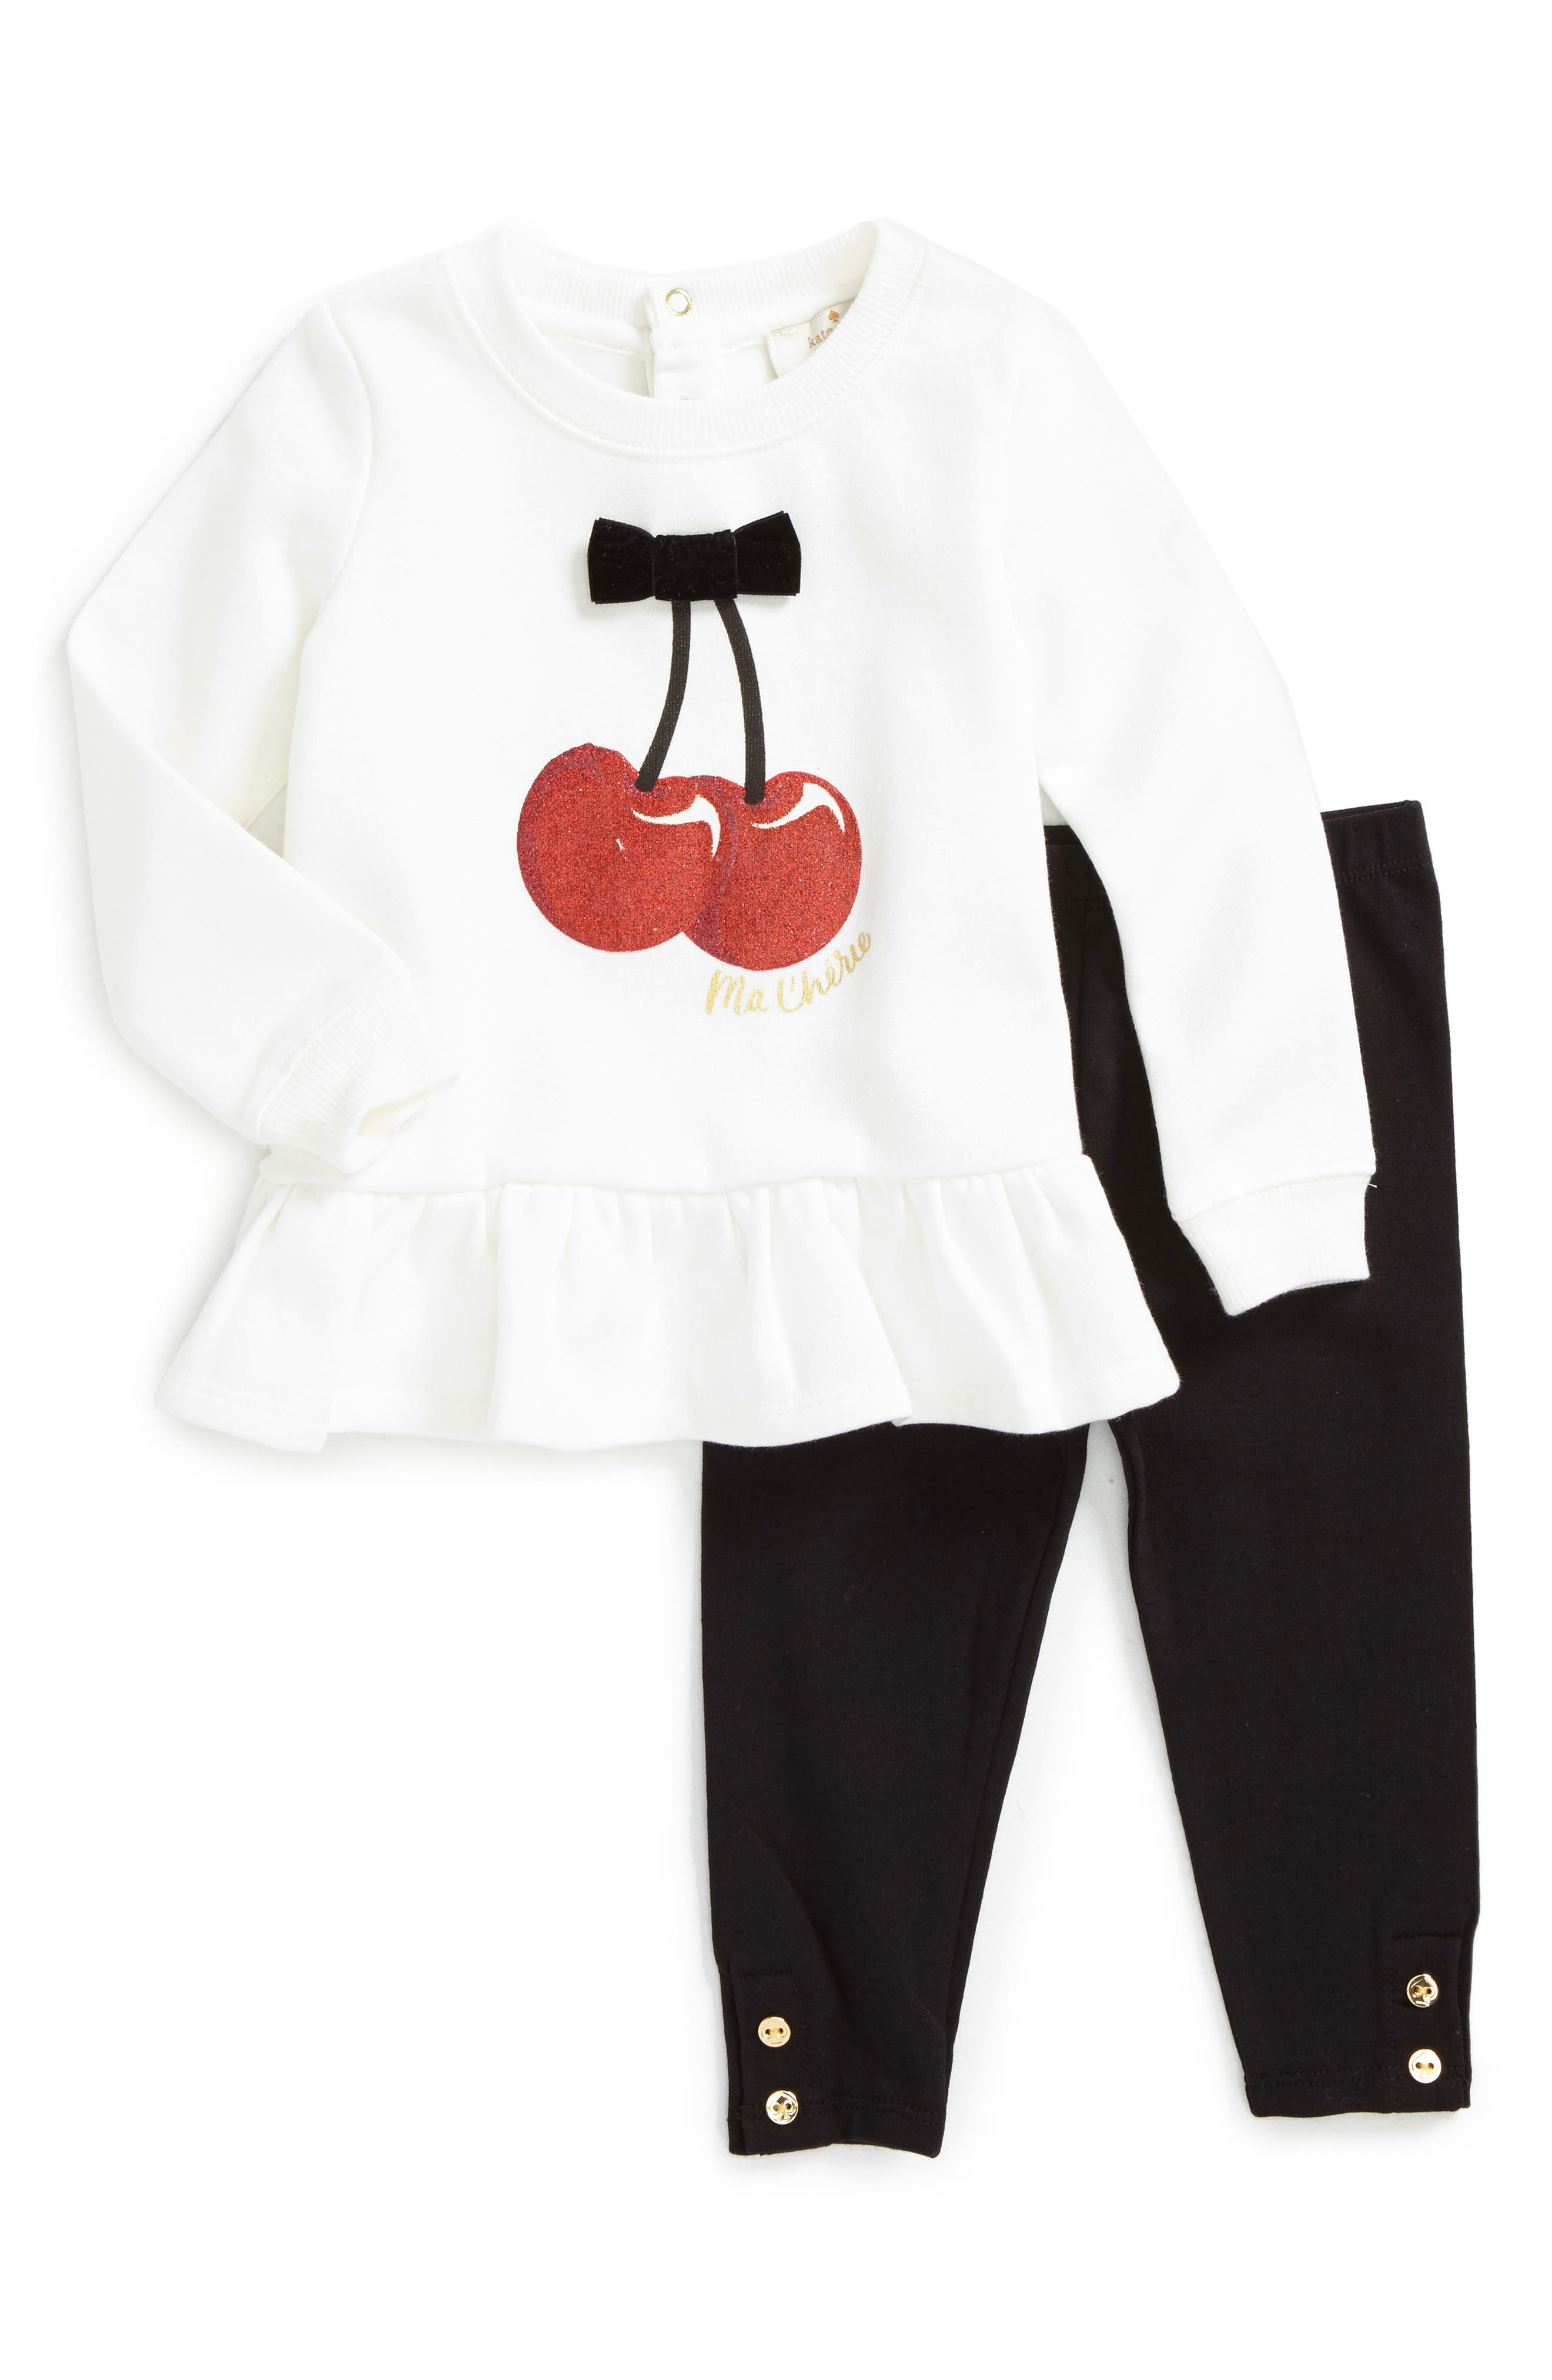 Alternate Image 1 Selected - kate spade new york ma chérie graphic top & leggings set (Baby Girls)